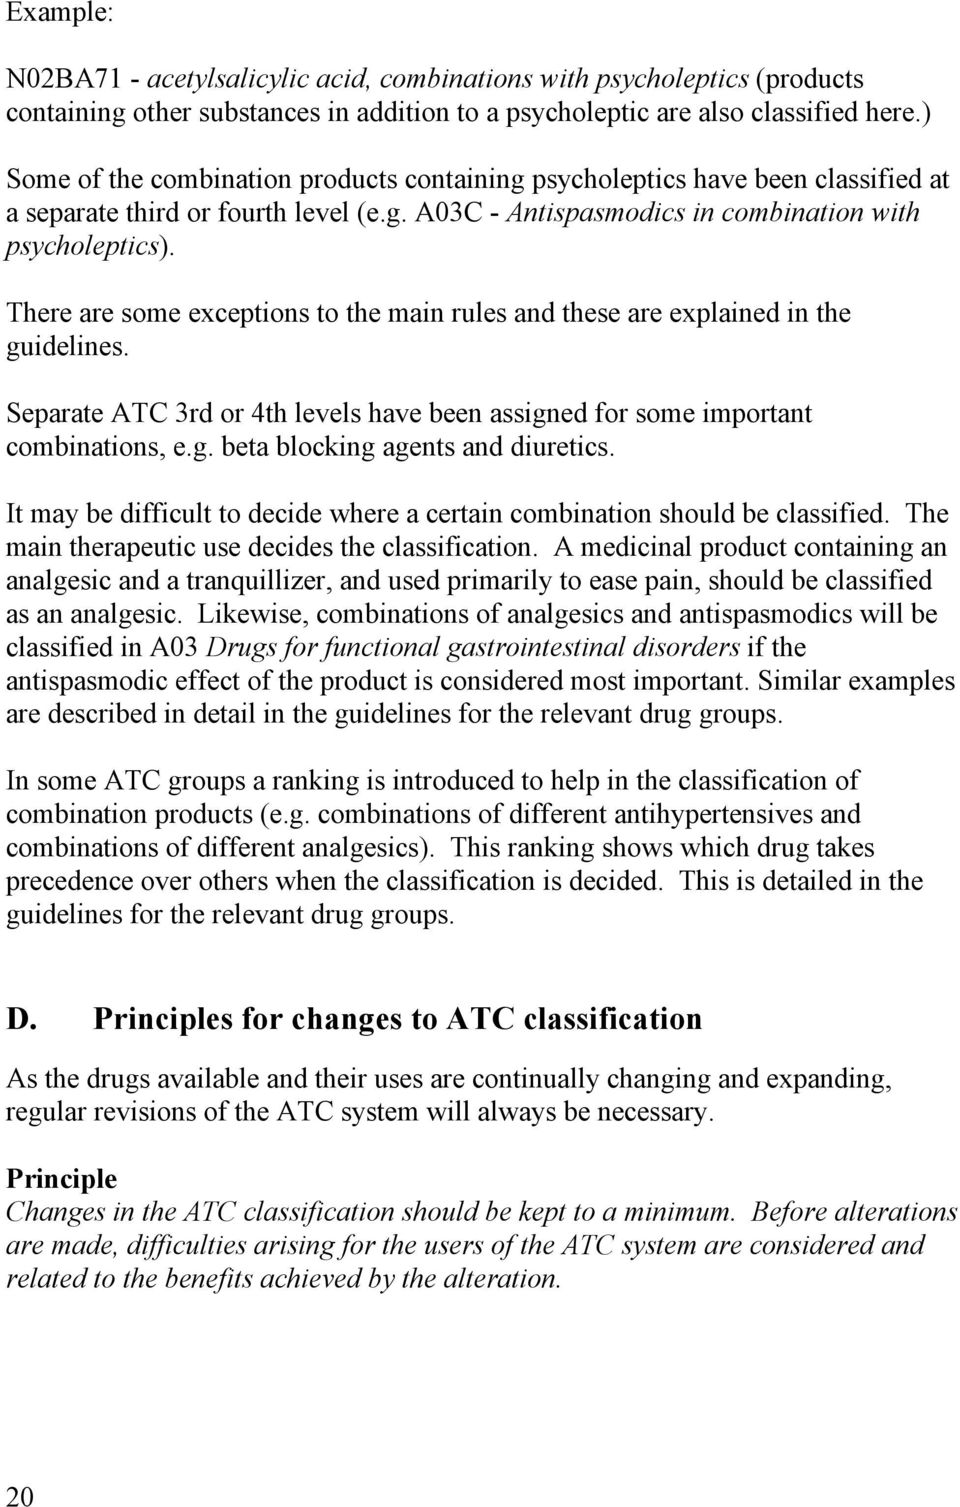 There are some exceptions to the main rules and these are explained in the guidelines. Separate ATC 3rd or 4th levels have been assigned for some important combinations, e.g. beta blocking agents and diuretics.